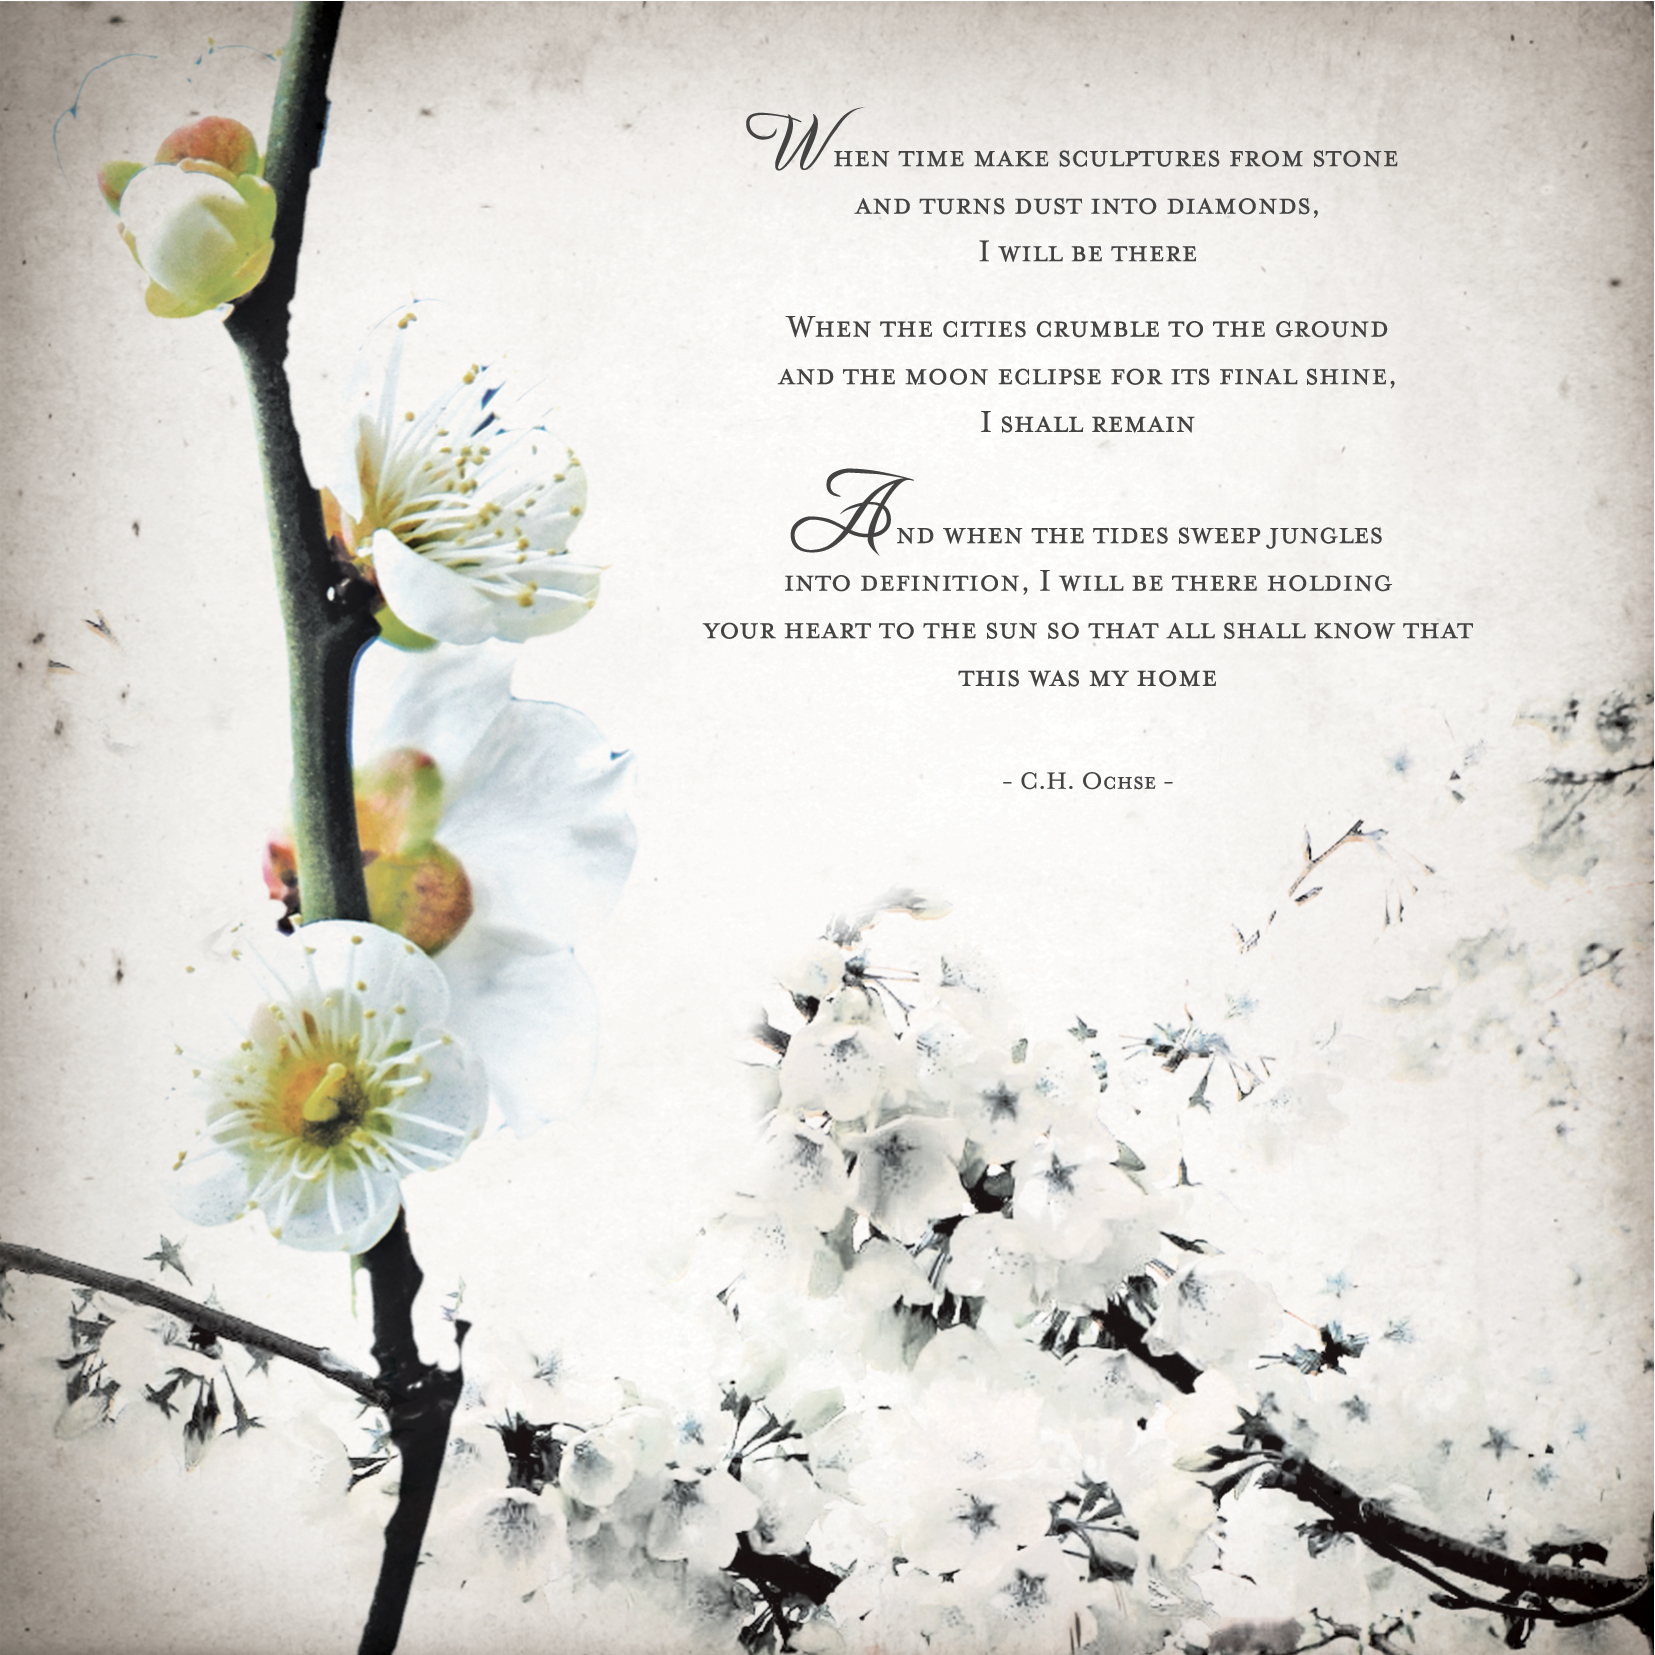 We used the blossoms effect in our wedding invitation as well with a poem